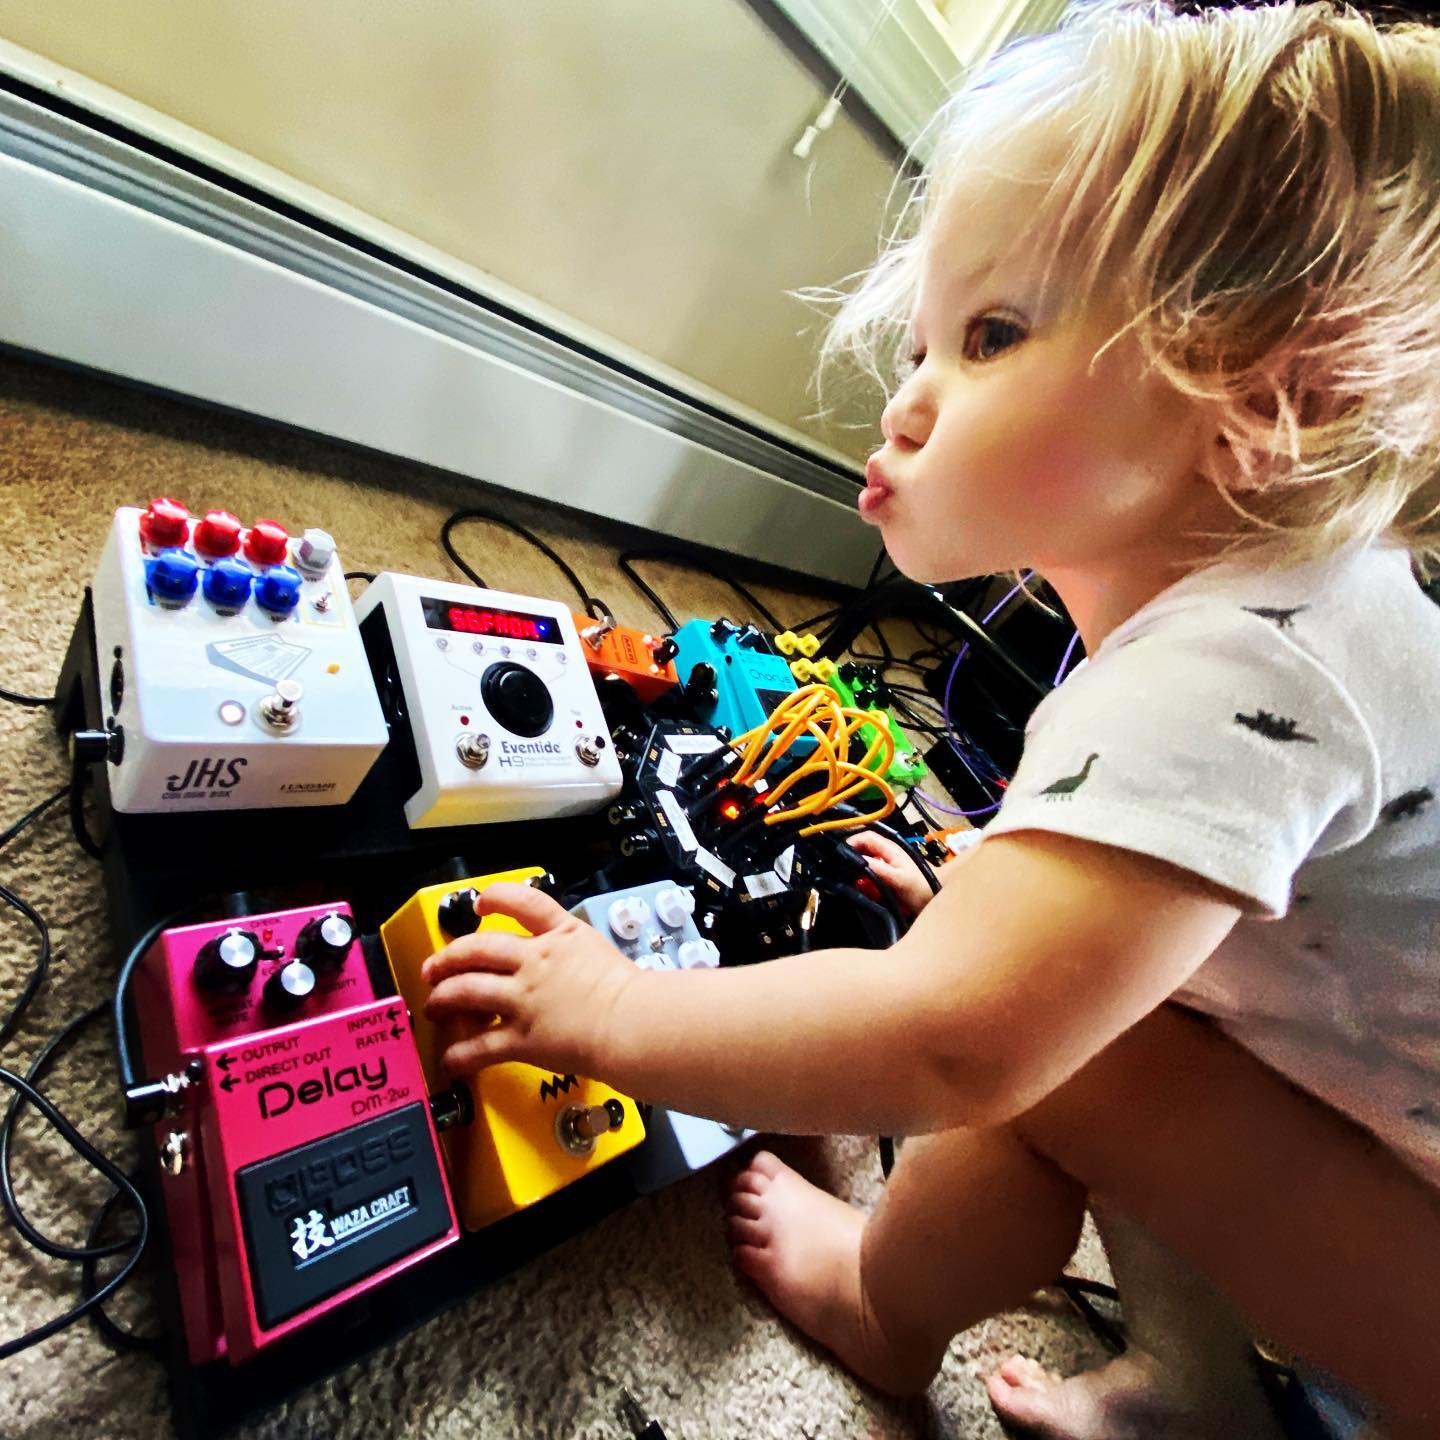 Violet and I are repatching the pedalboard with a Patchulator 8000